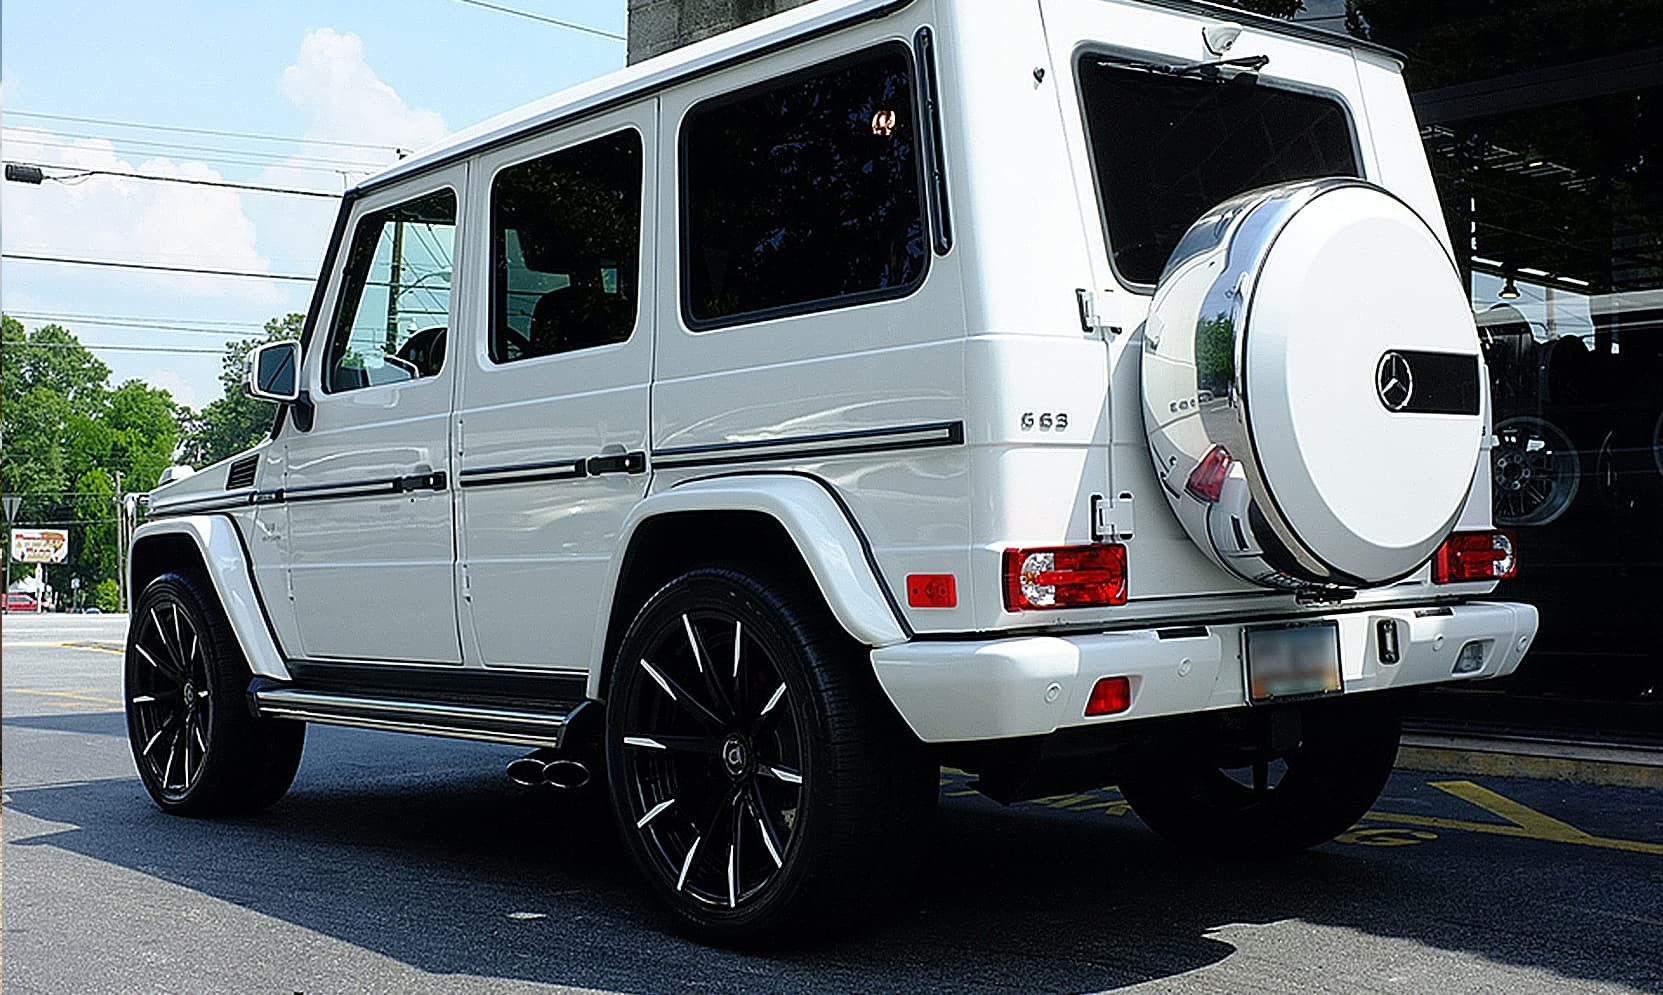 Custom CSS-15 on the Mercedes-Benz G63.